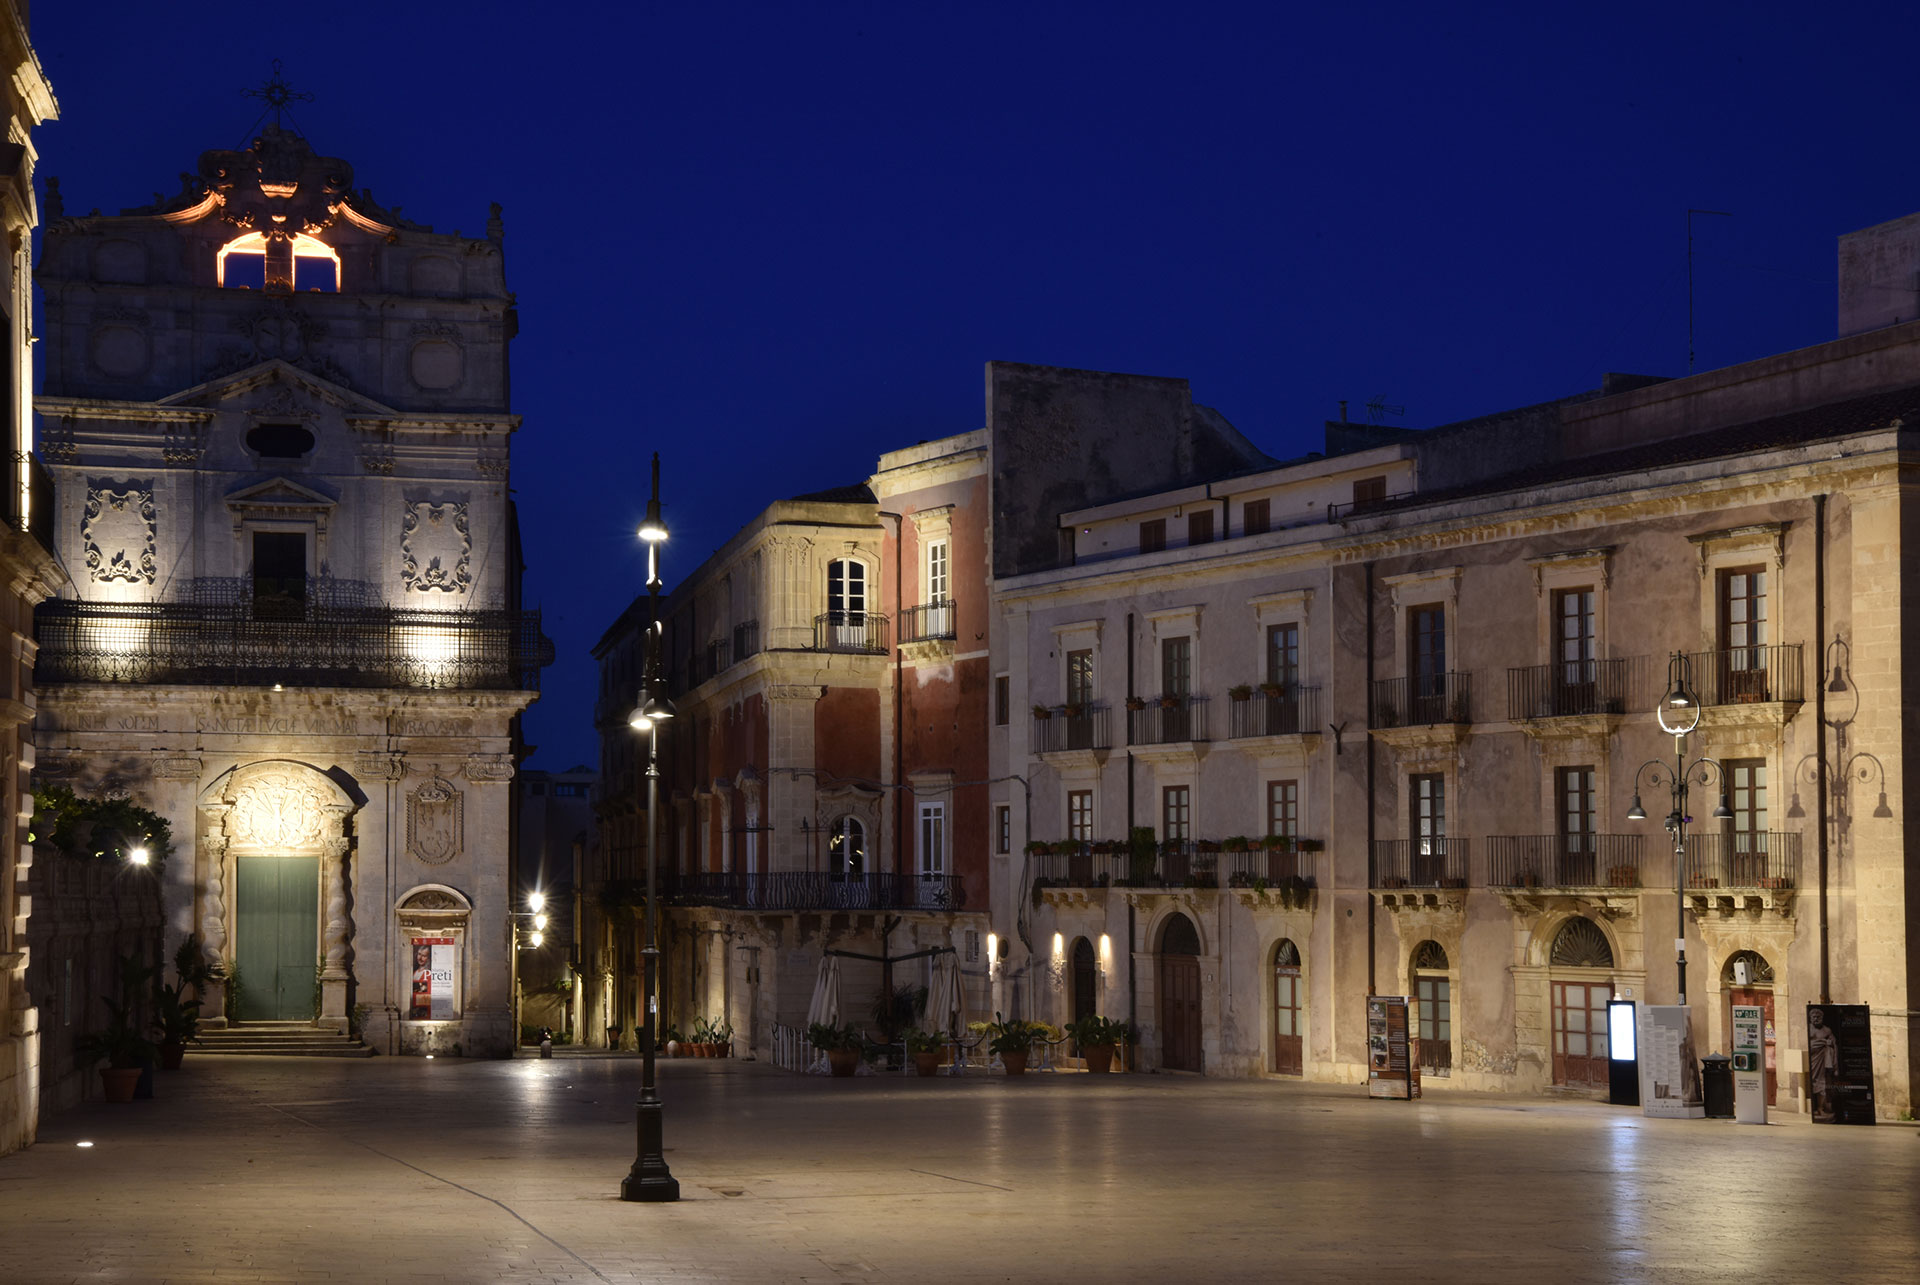 PUBLIC LIGHTING OF THE MUNICIPALITY OF SIRACUSA – ORTIGIA